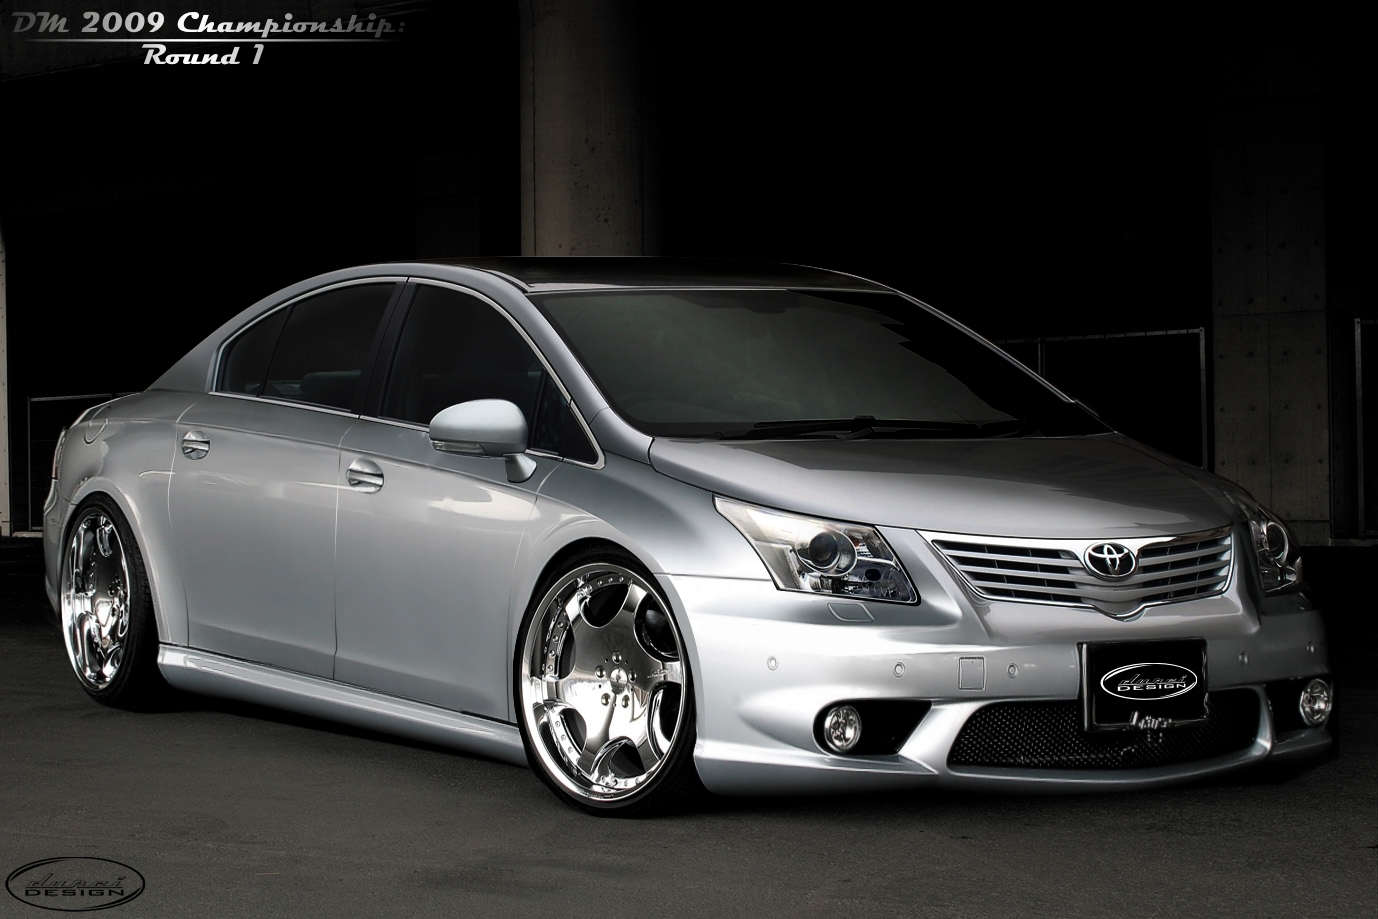 car new top toyota avensis wallpapers. Black Bedroom Furniture Sets. Home Design Ideas